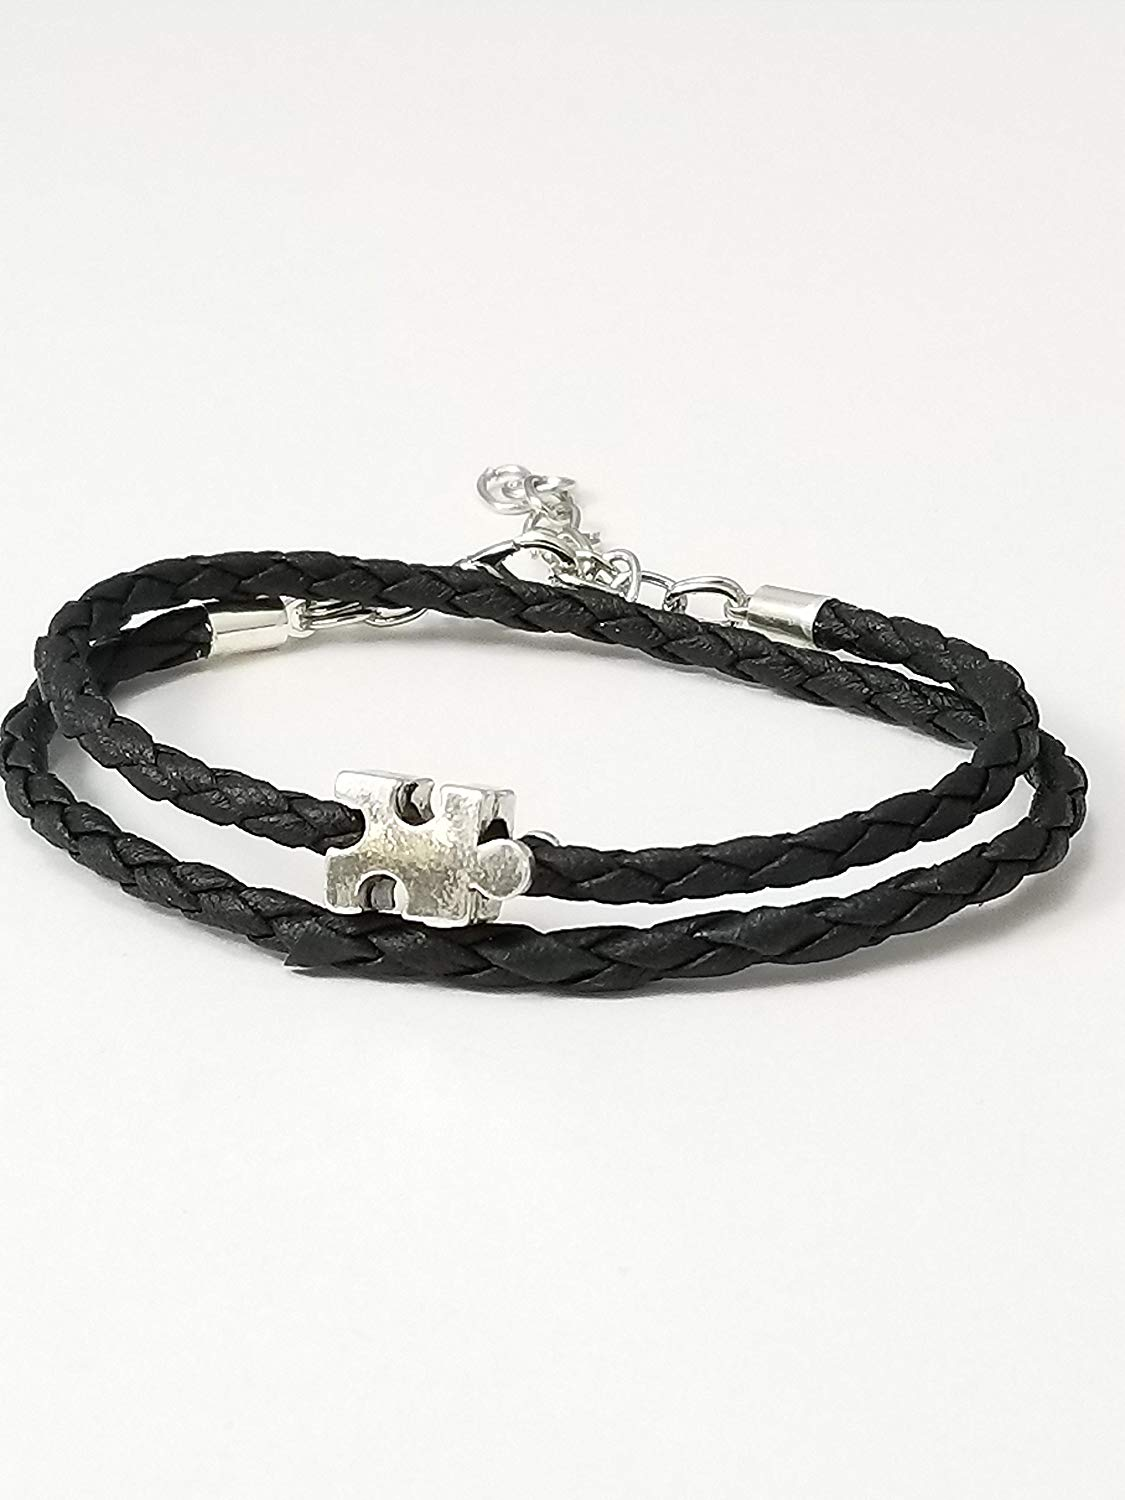 Autism Awareness Wrap Bracelet Black Braided Leather Puzzle Piece Bead Adjustable 6-8 Inches Gifts For Mom Teacher Friends And Family.